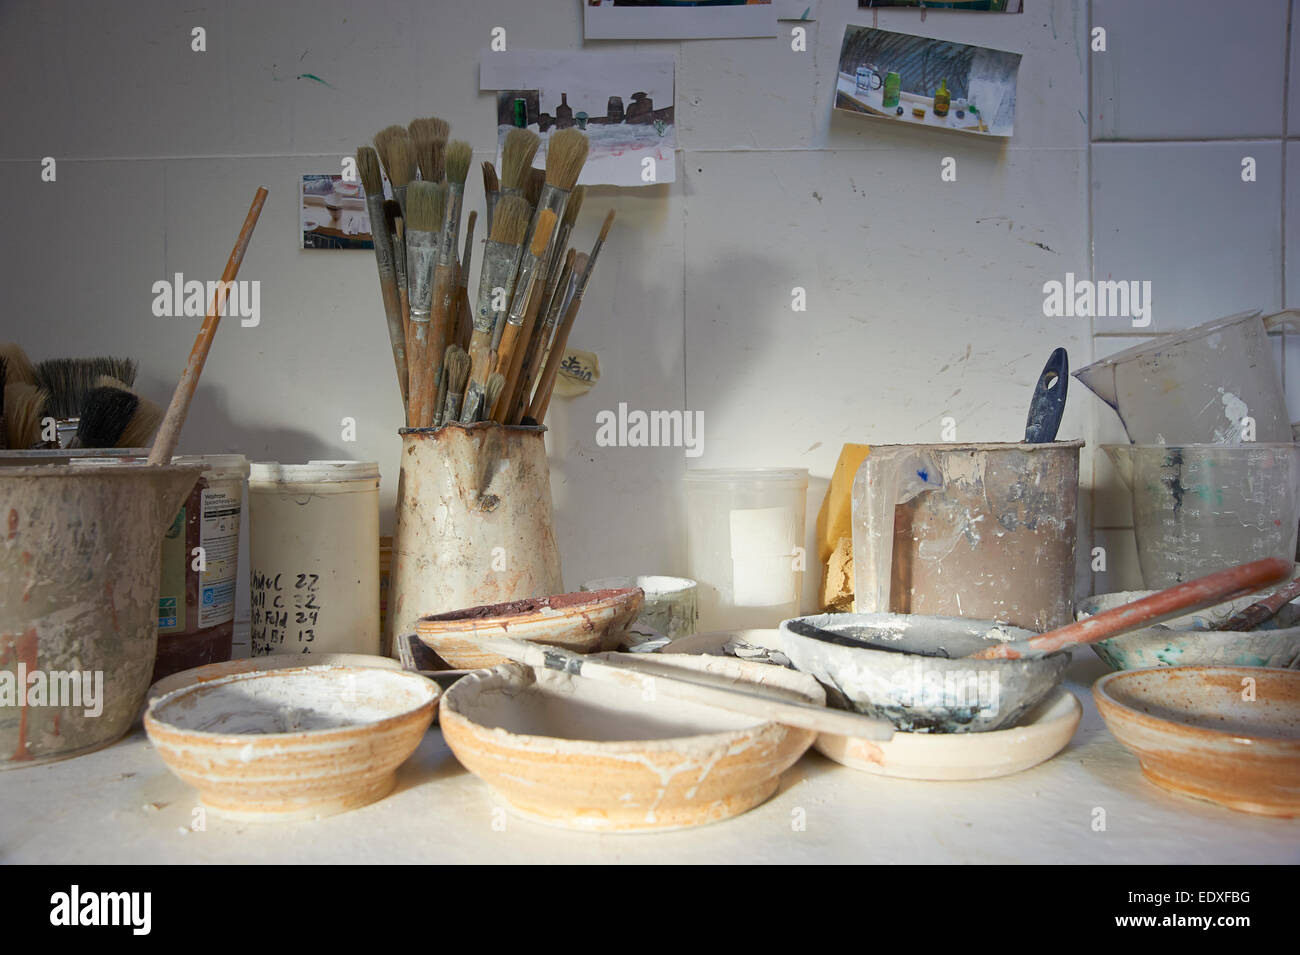 Still Life of the tools of a potter or ceramicist in their studio - Stock Image